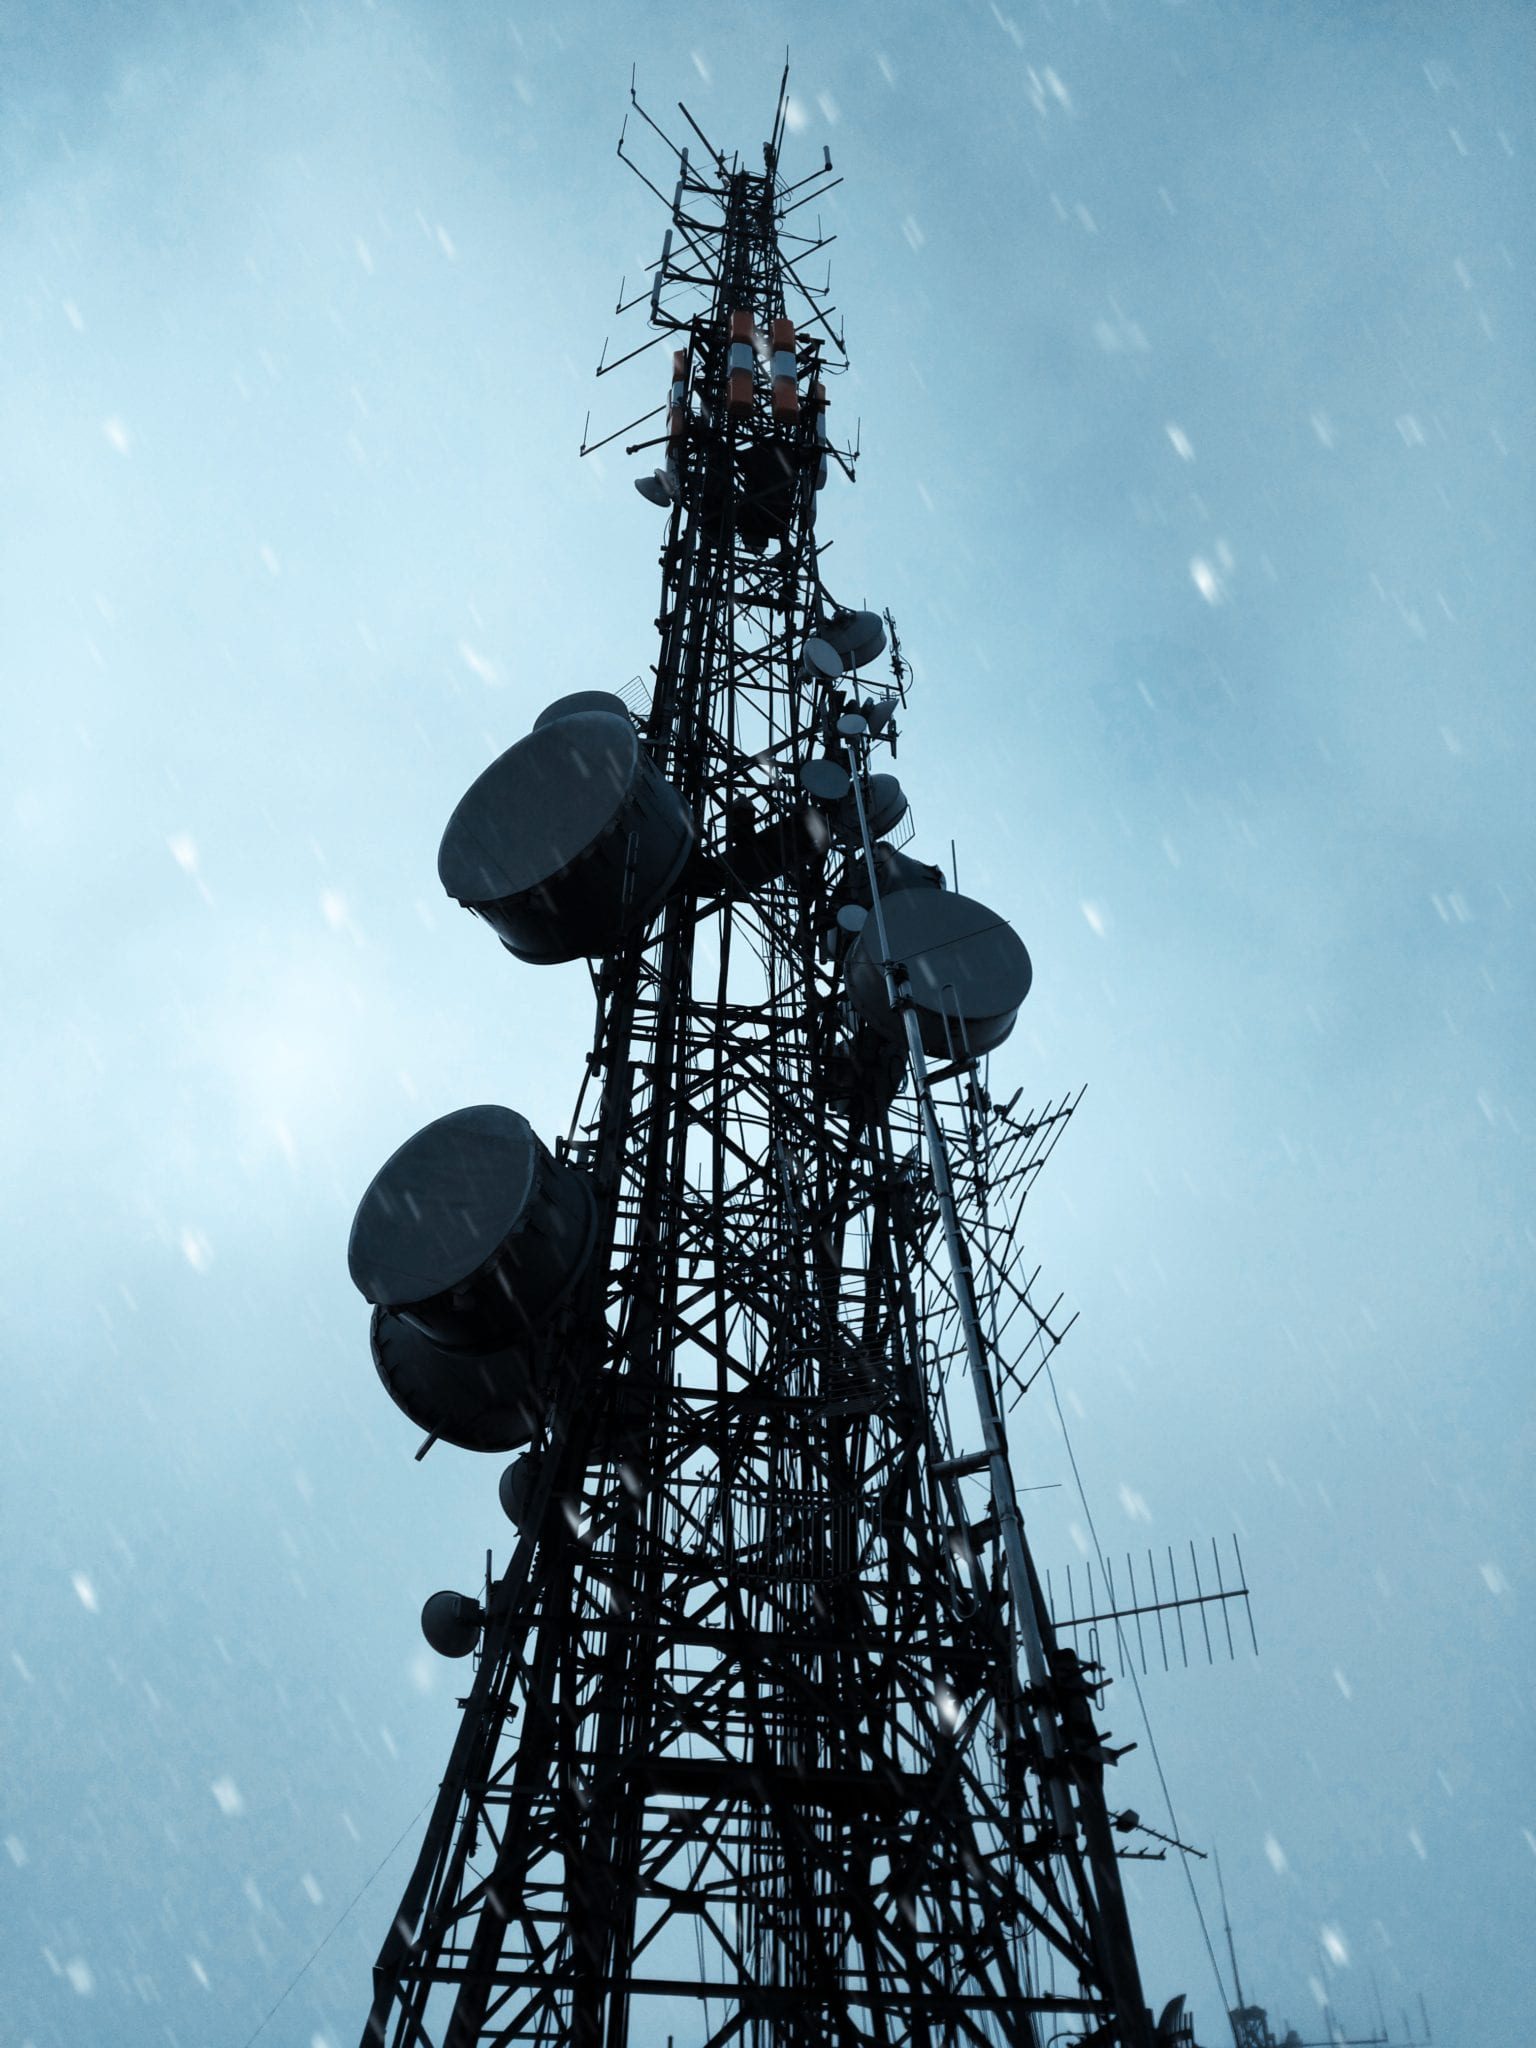 air-broadcast-antenna-architecture-2415405